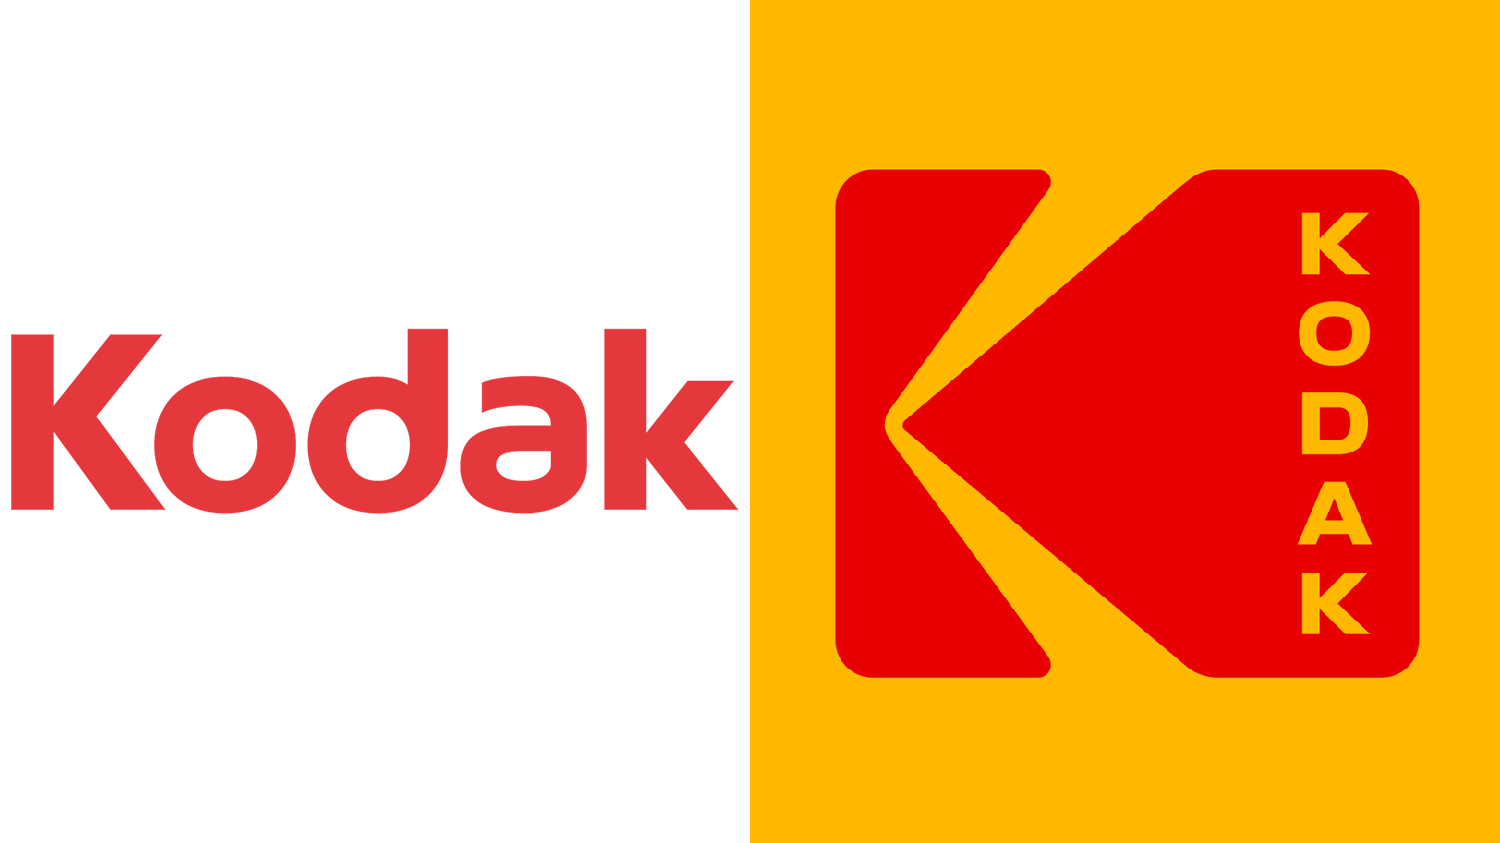 kodak chat sites Online dating in kodak for free the only 100% free online dating site for dating, love, relationships and friendship register here and chat with other kodak singles.